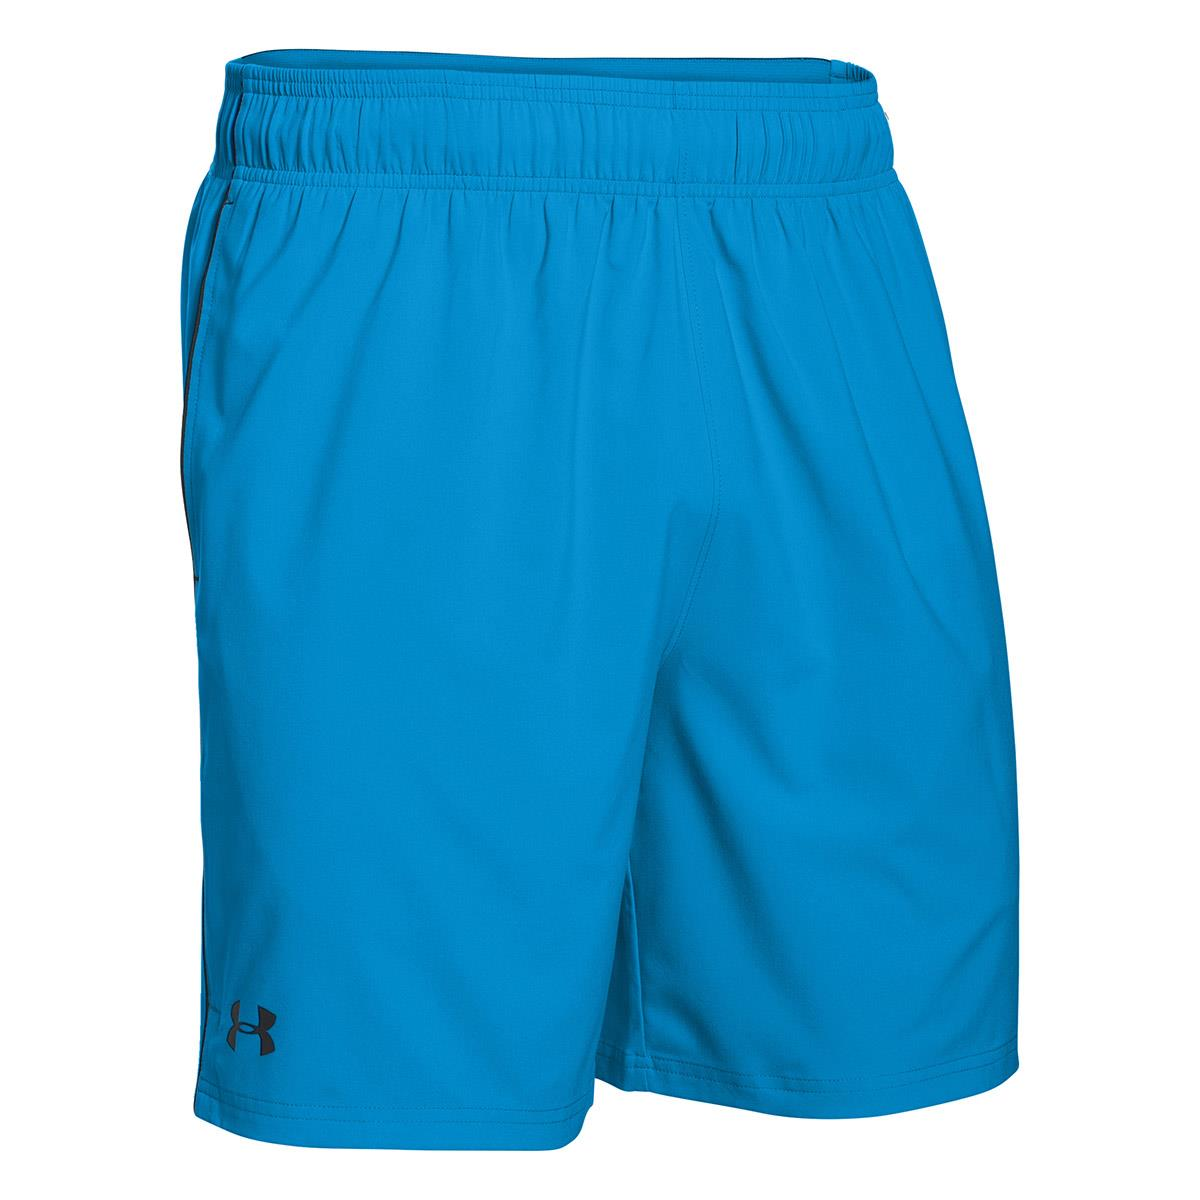 Under Armour Short Heatgear Pool Uomo